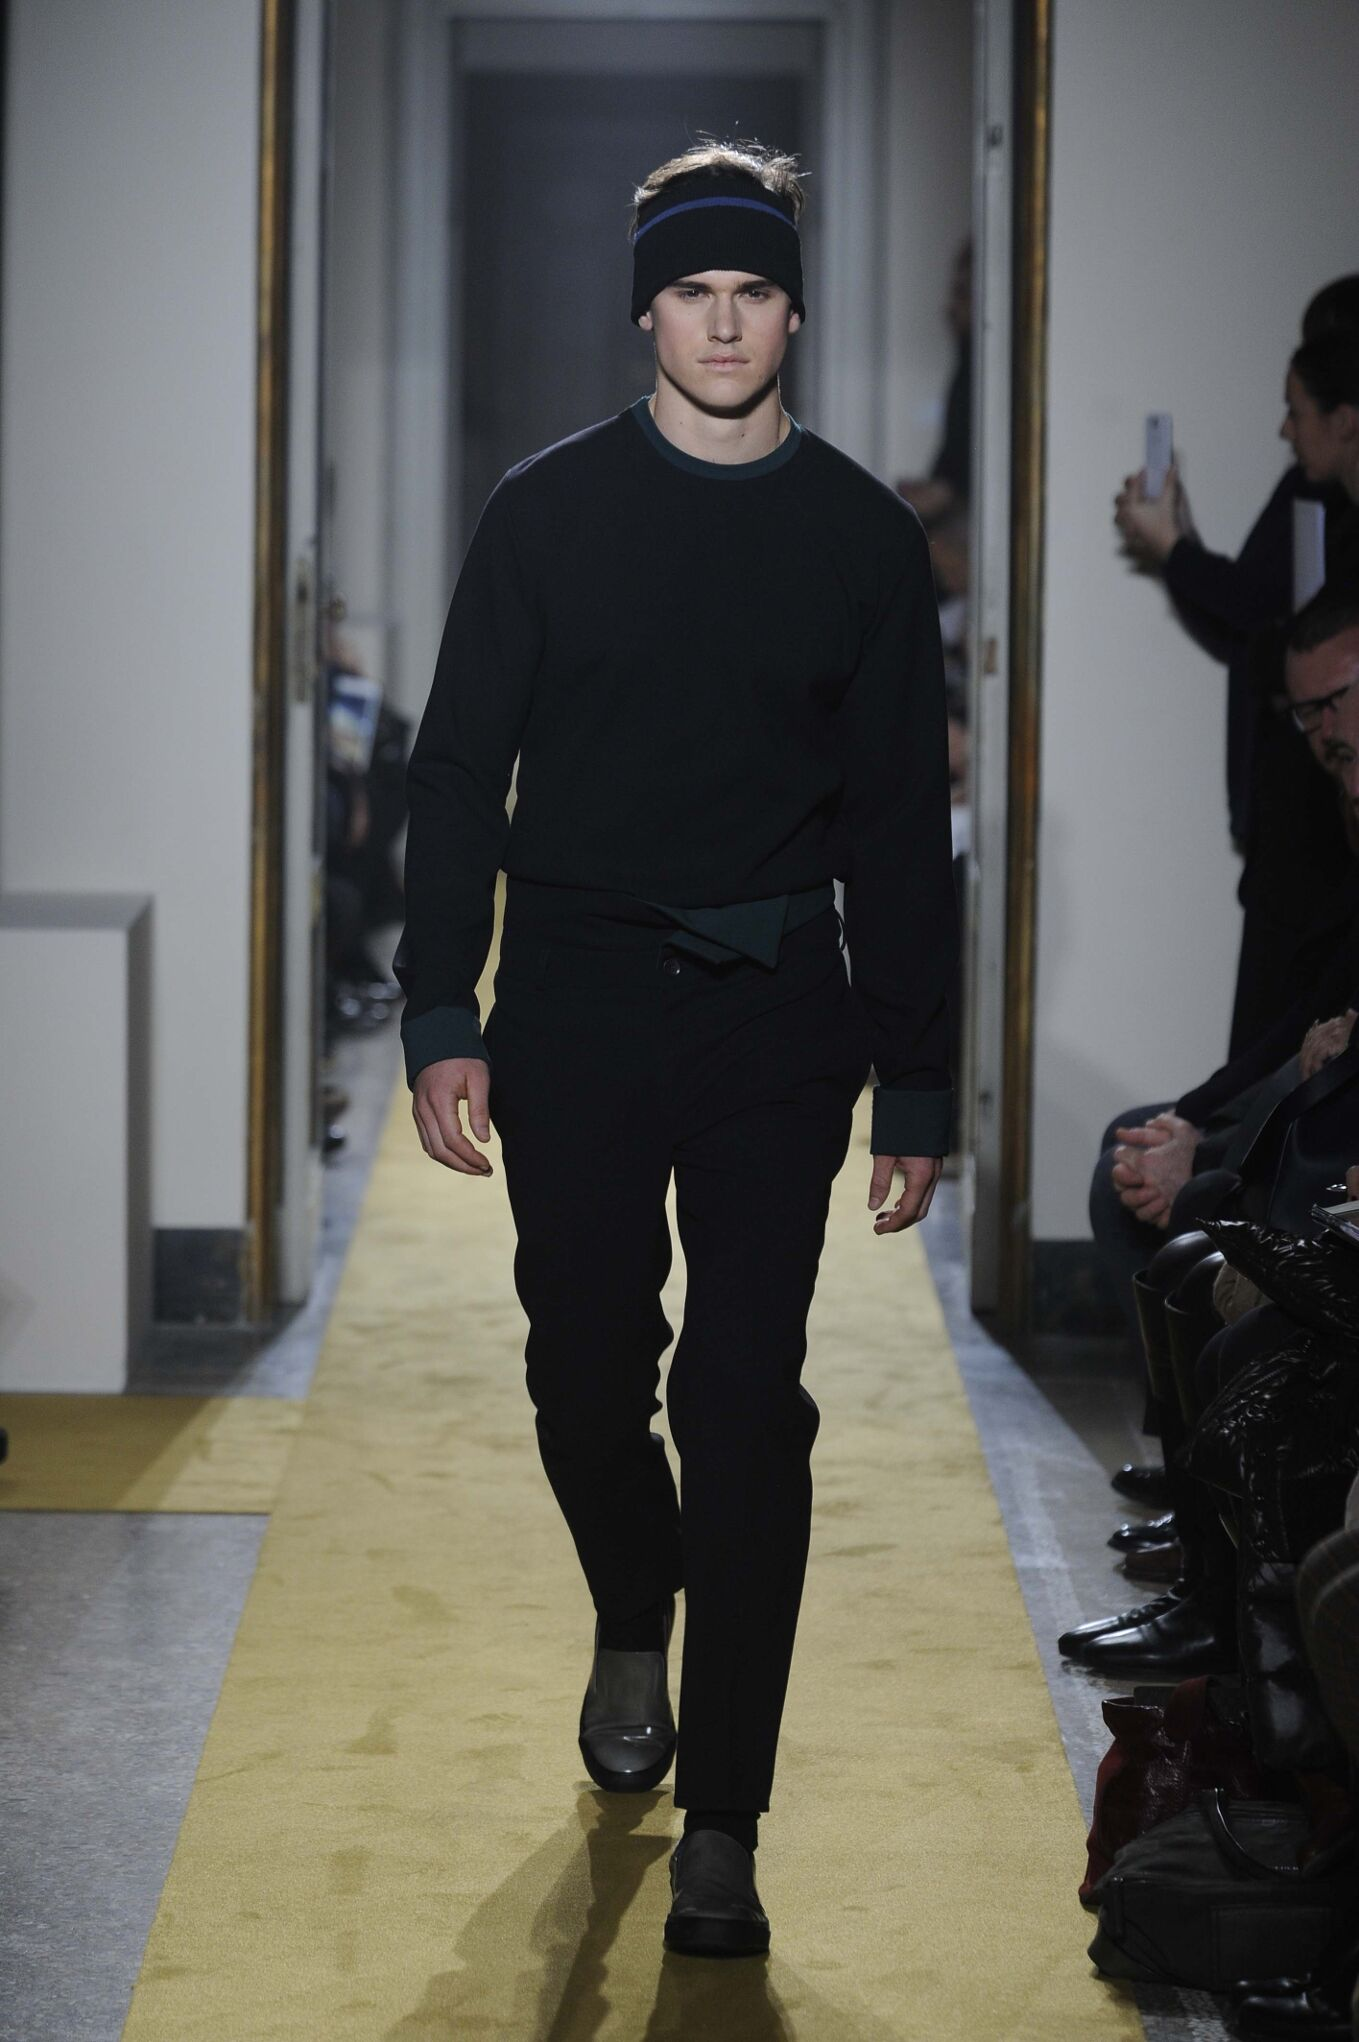 Fall Andrea Incontri Fashion Man